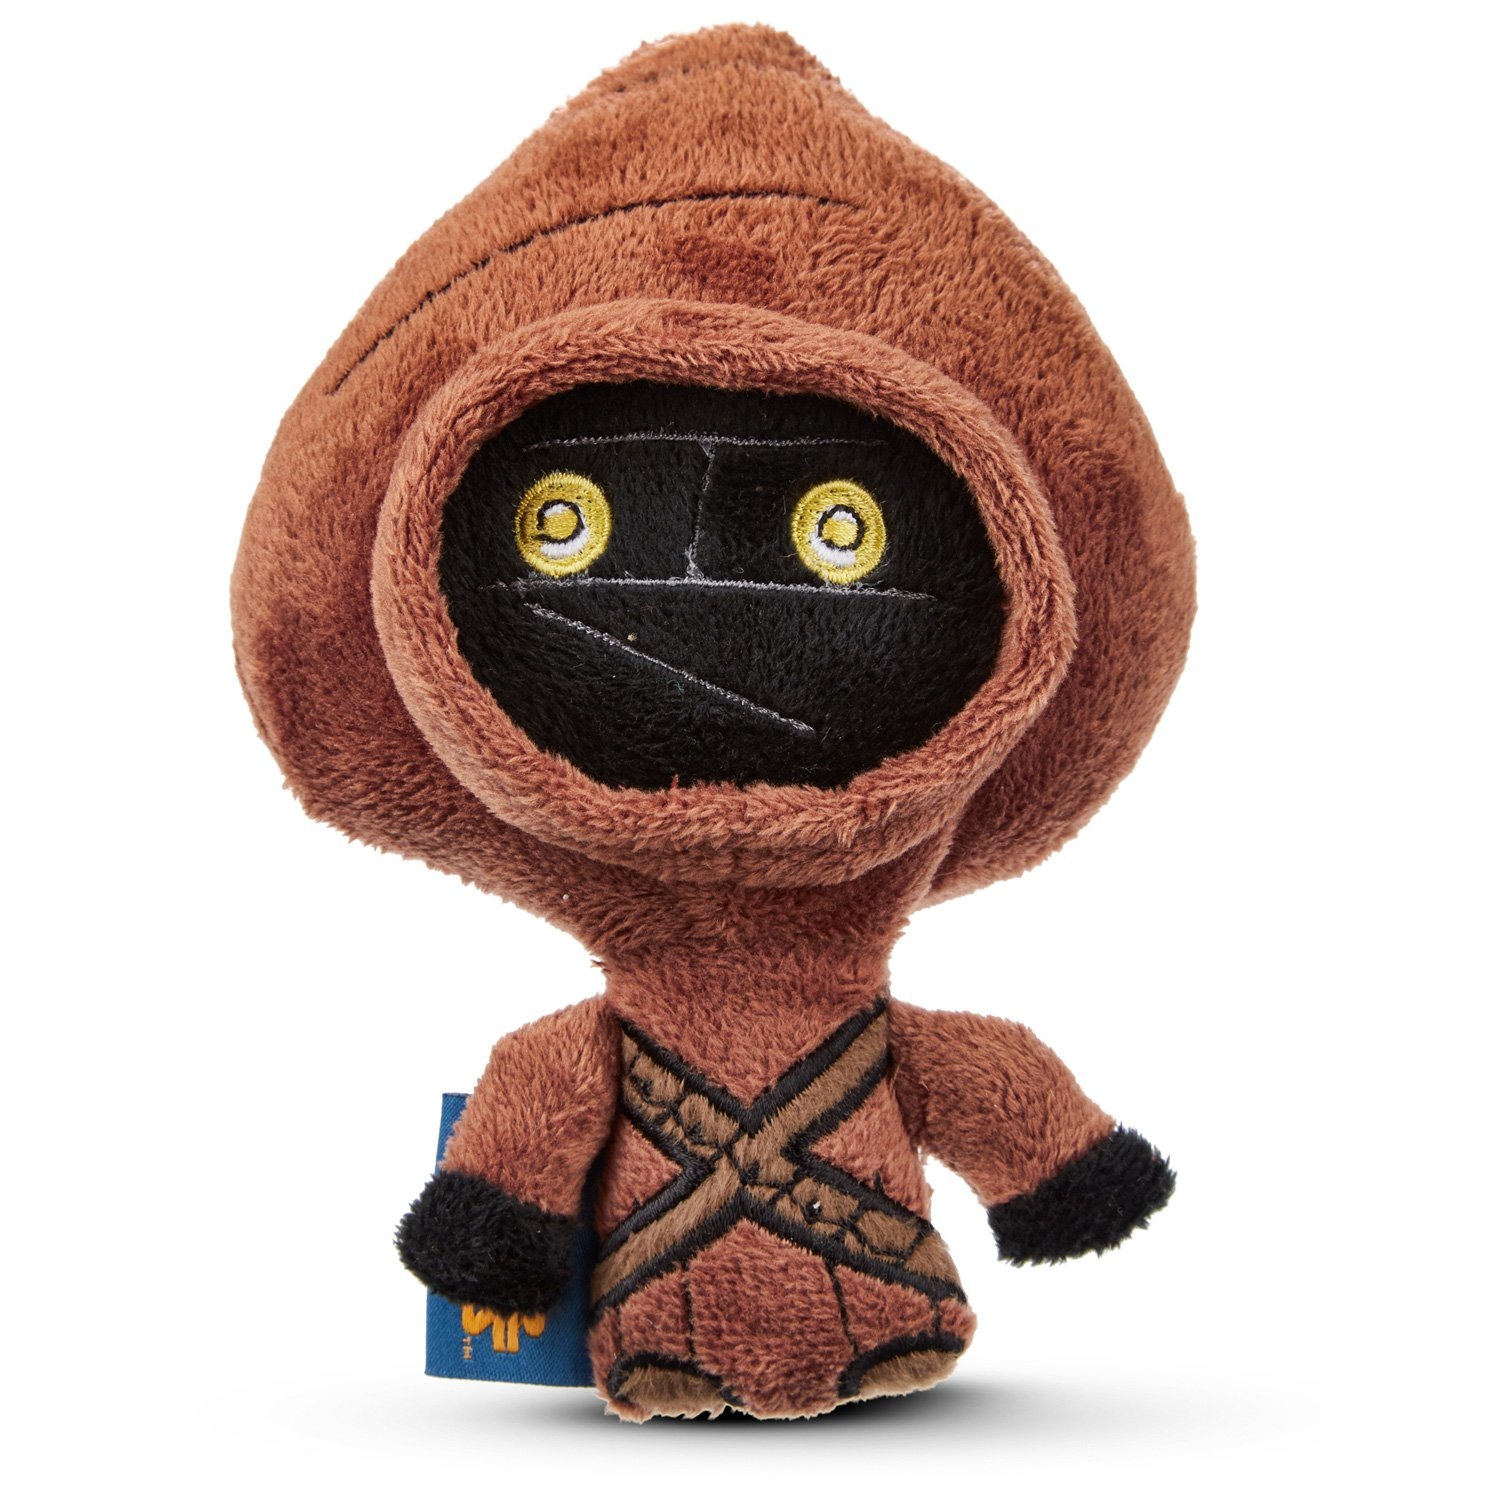 STAR WARS Jawa Plush Dog Toy